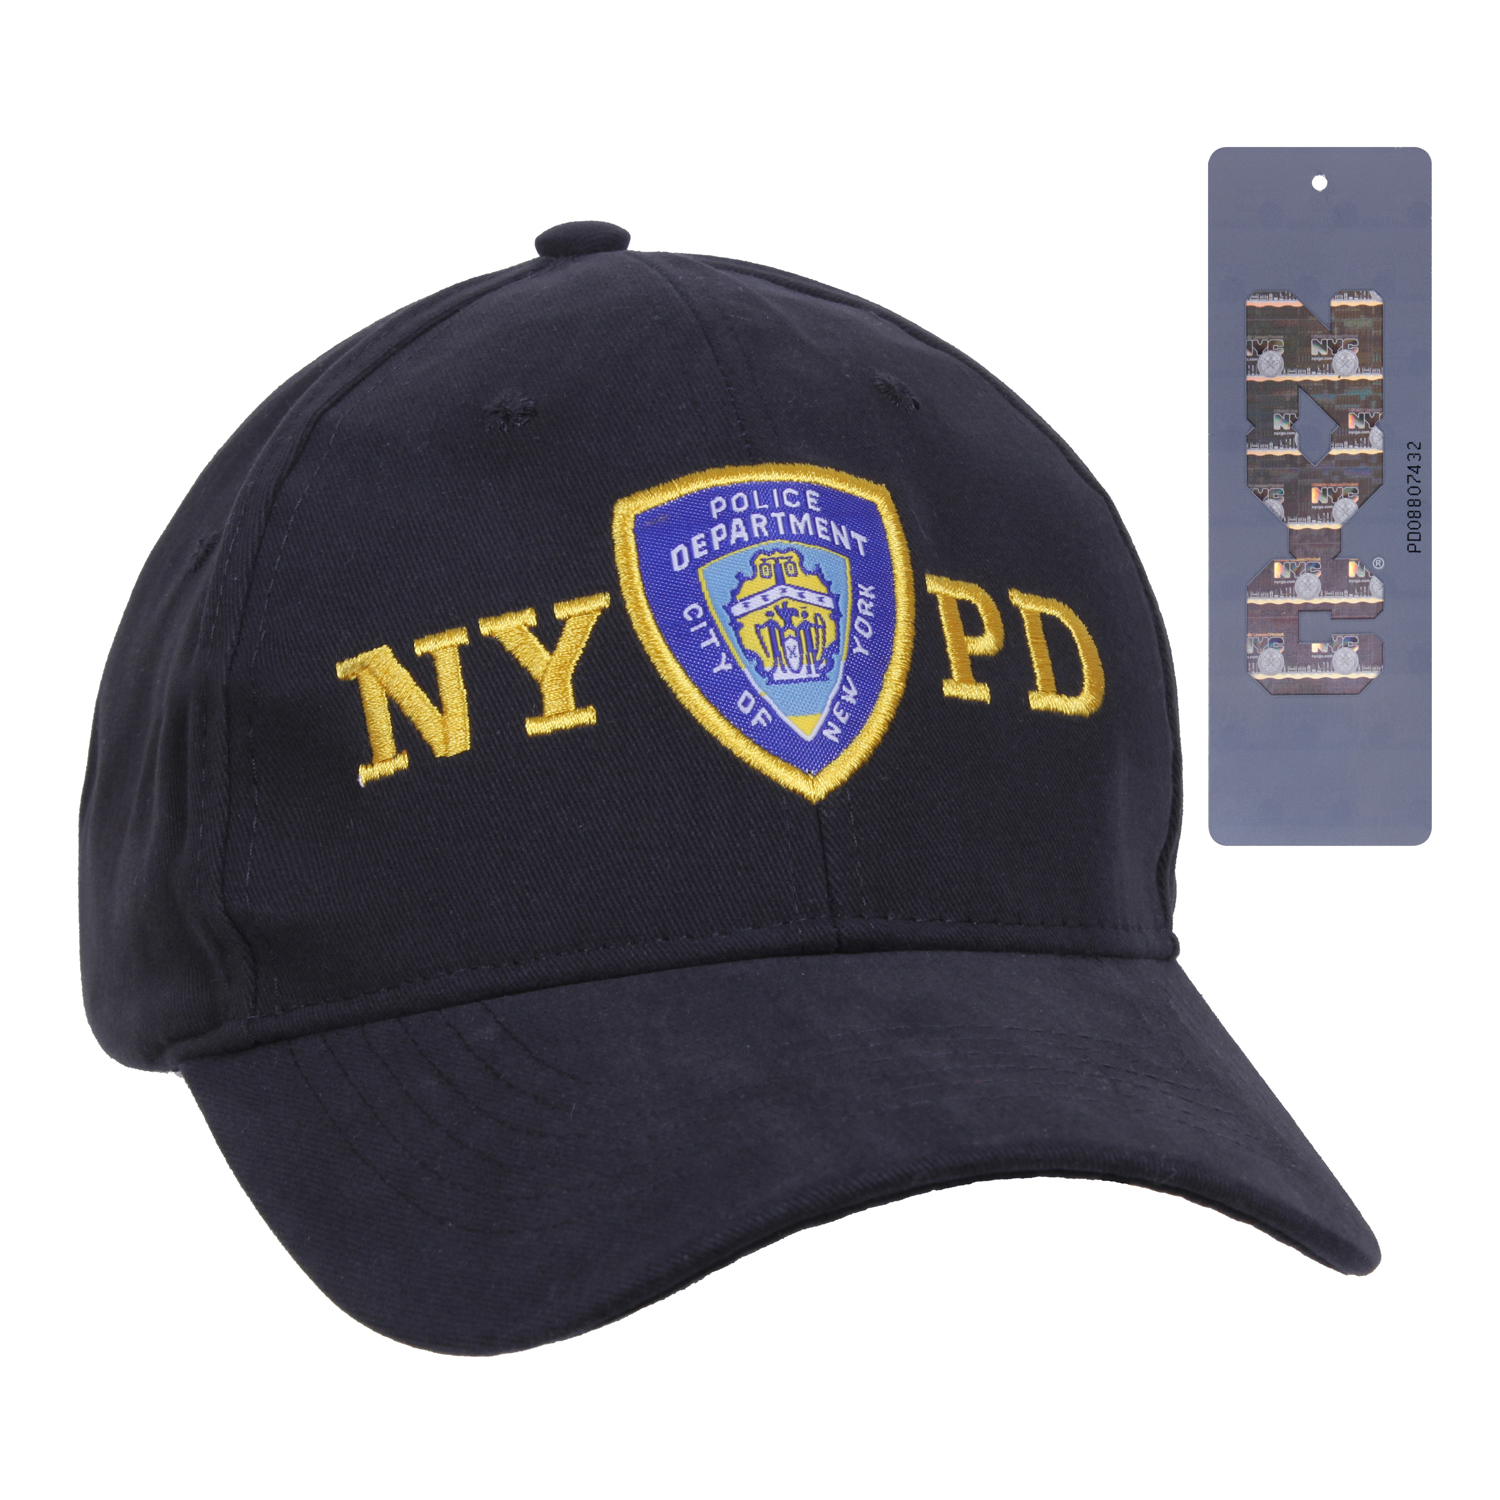 Officially Licensed NYPD Adjustable Cap With Emblem ed13e90d9550